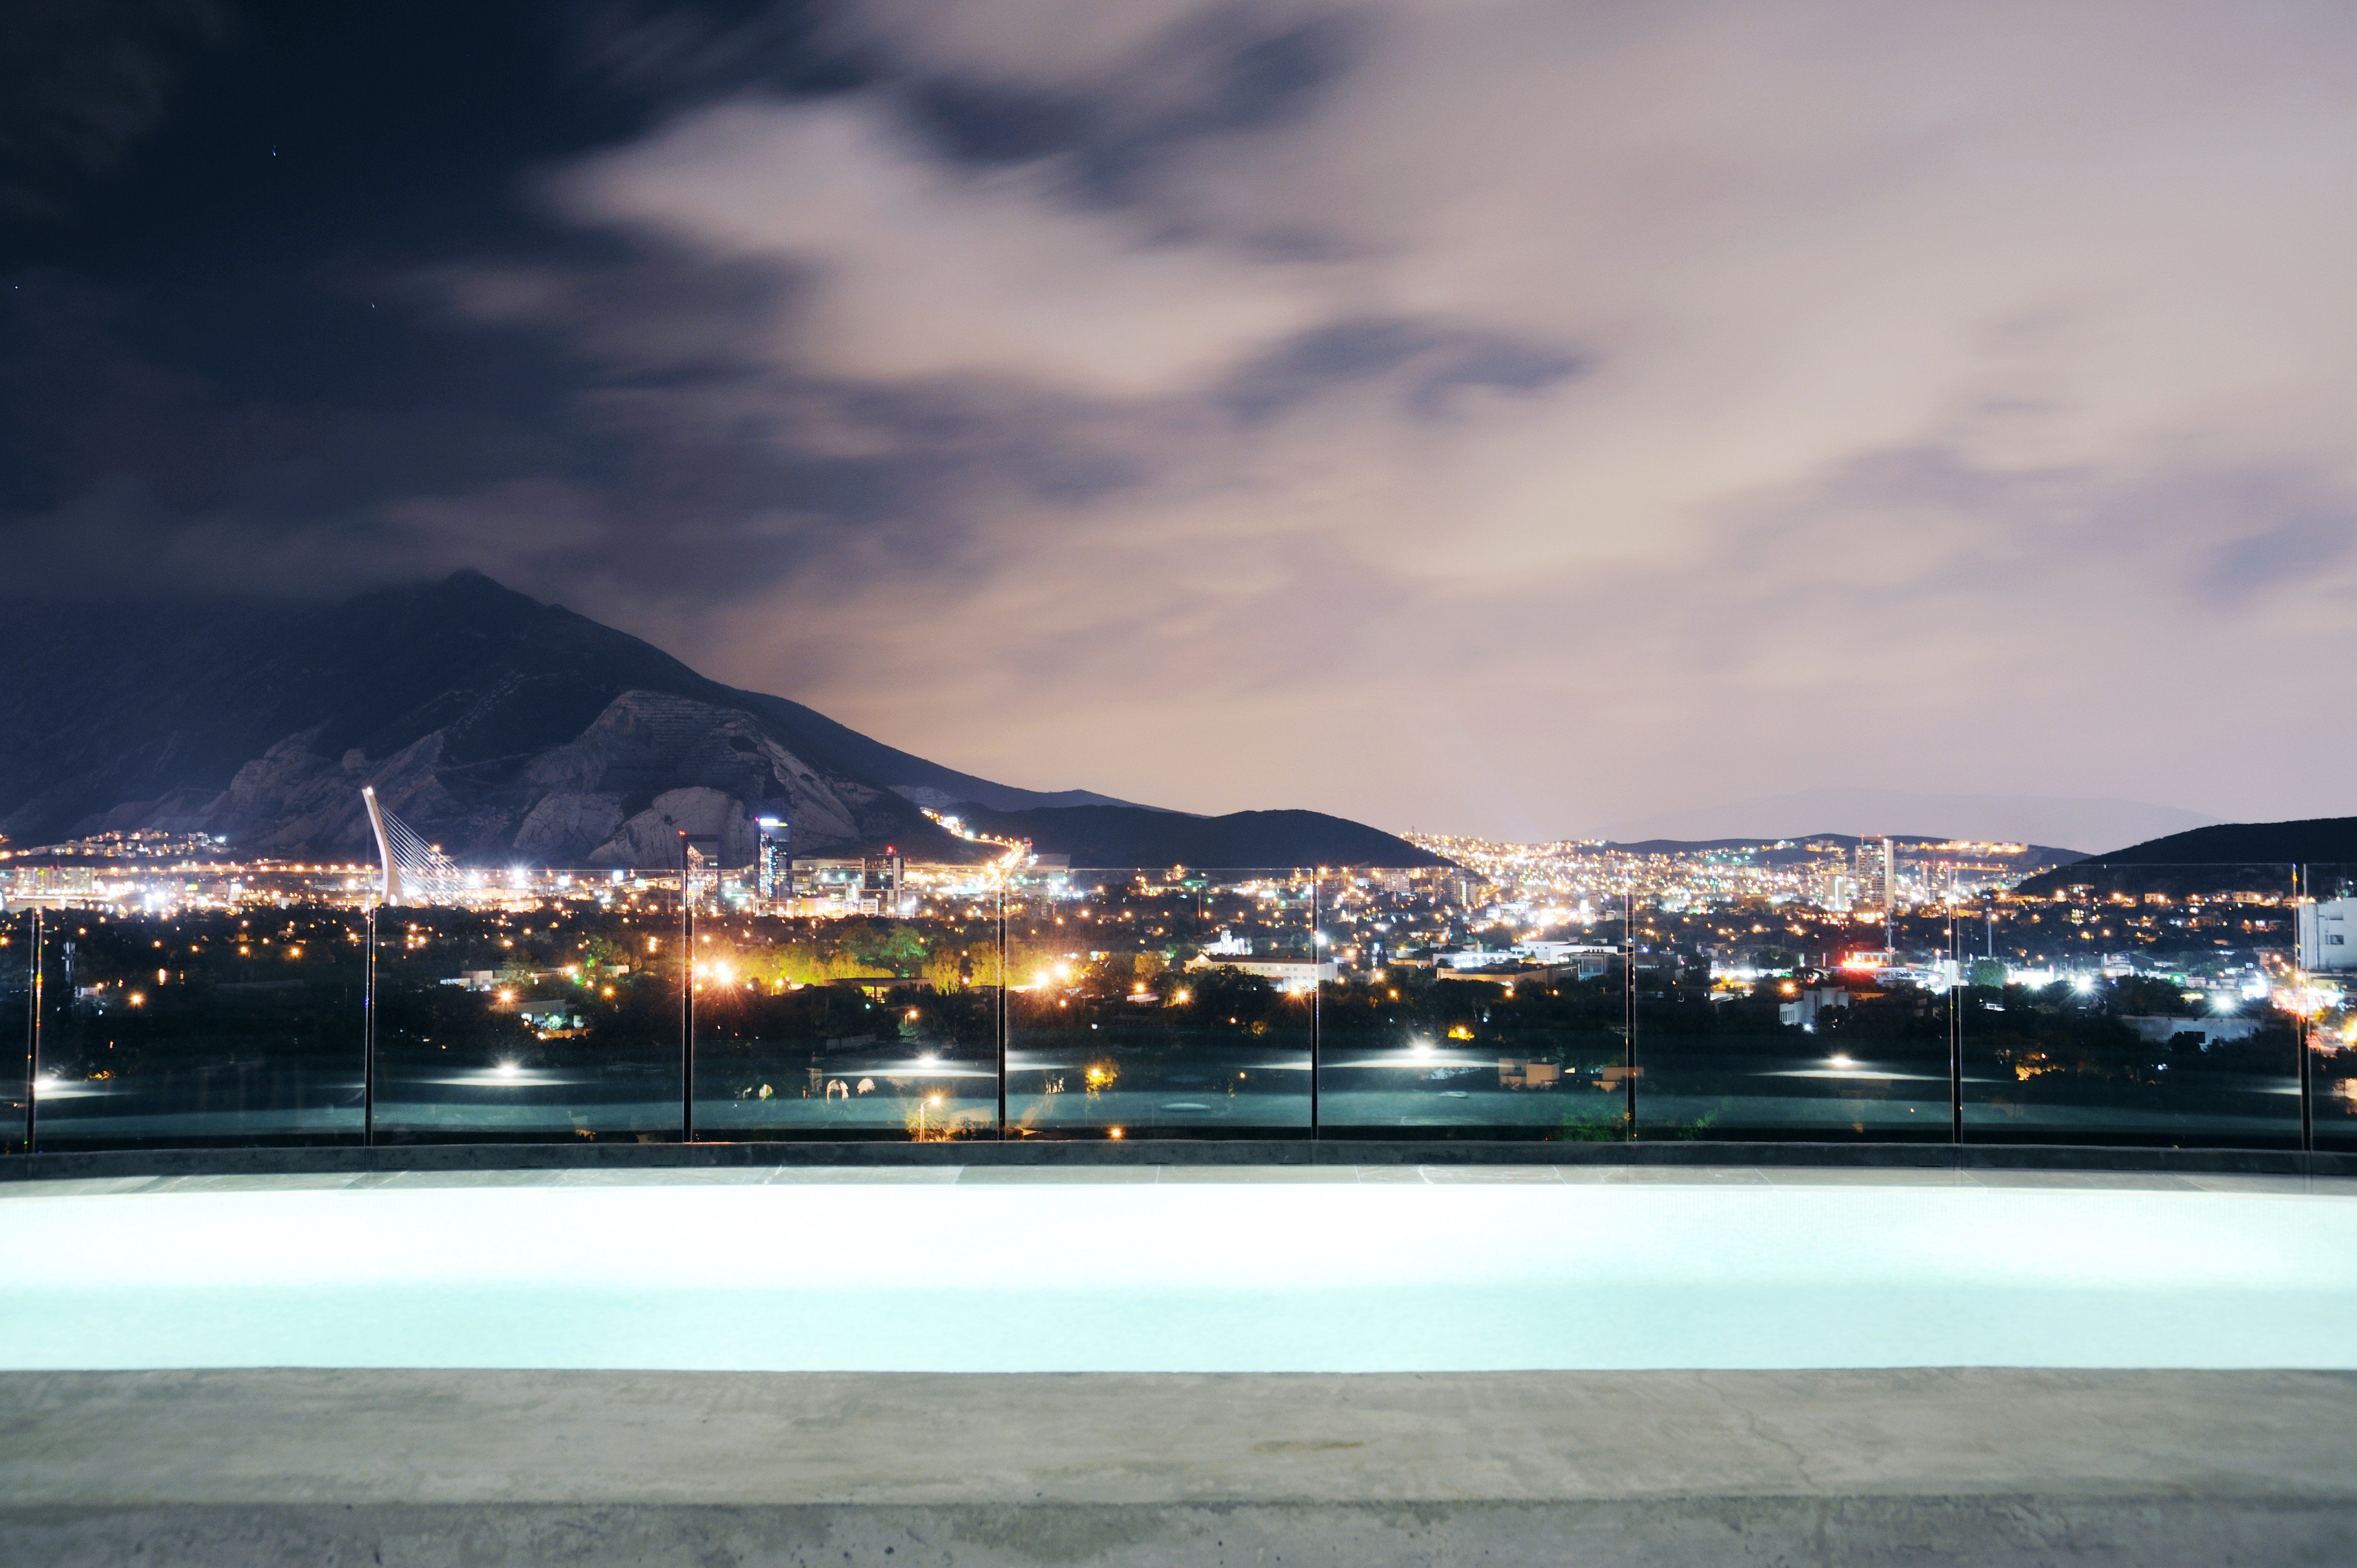 Boutique Modern Mountains Pool Scenic views sky snow weather night City atmosphere of earth sport venue evening cityscape dusk skyline stadium panorama shore